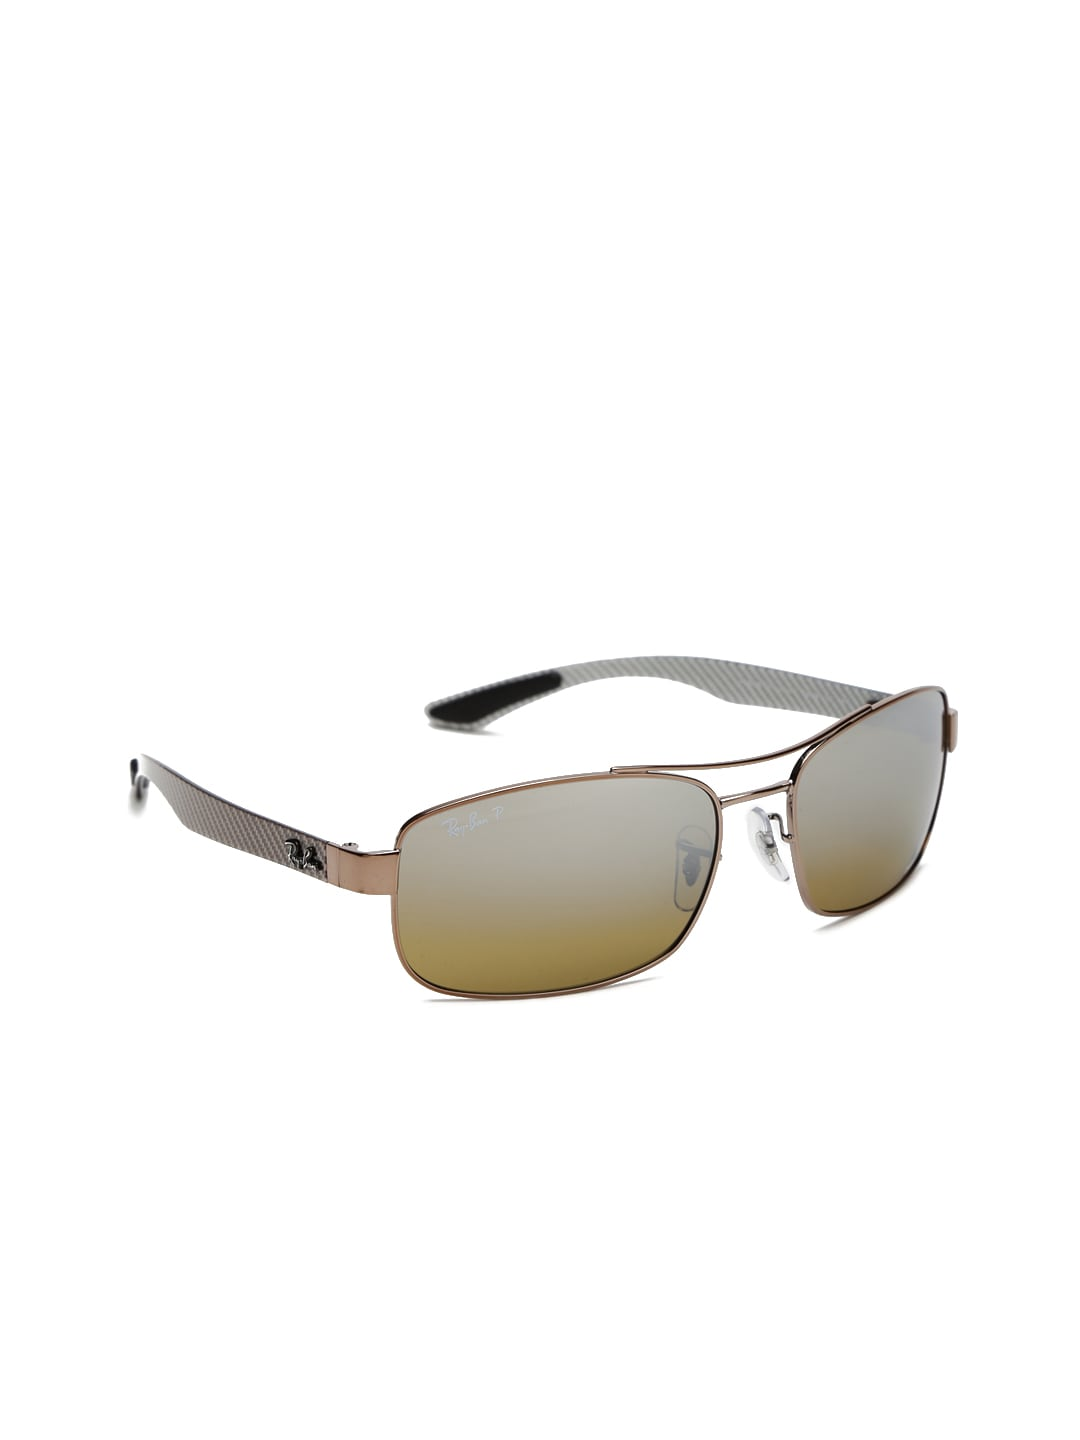 81641652fb Ray Ban Case - Buy Ray Ban Case online in India